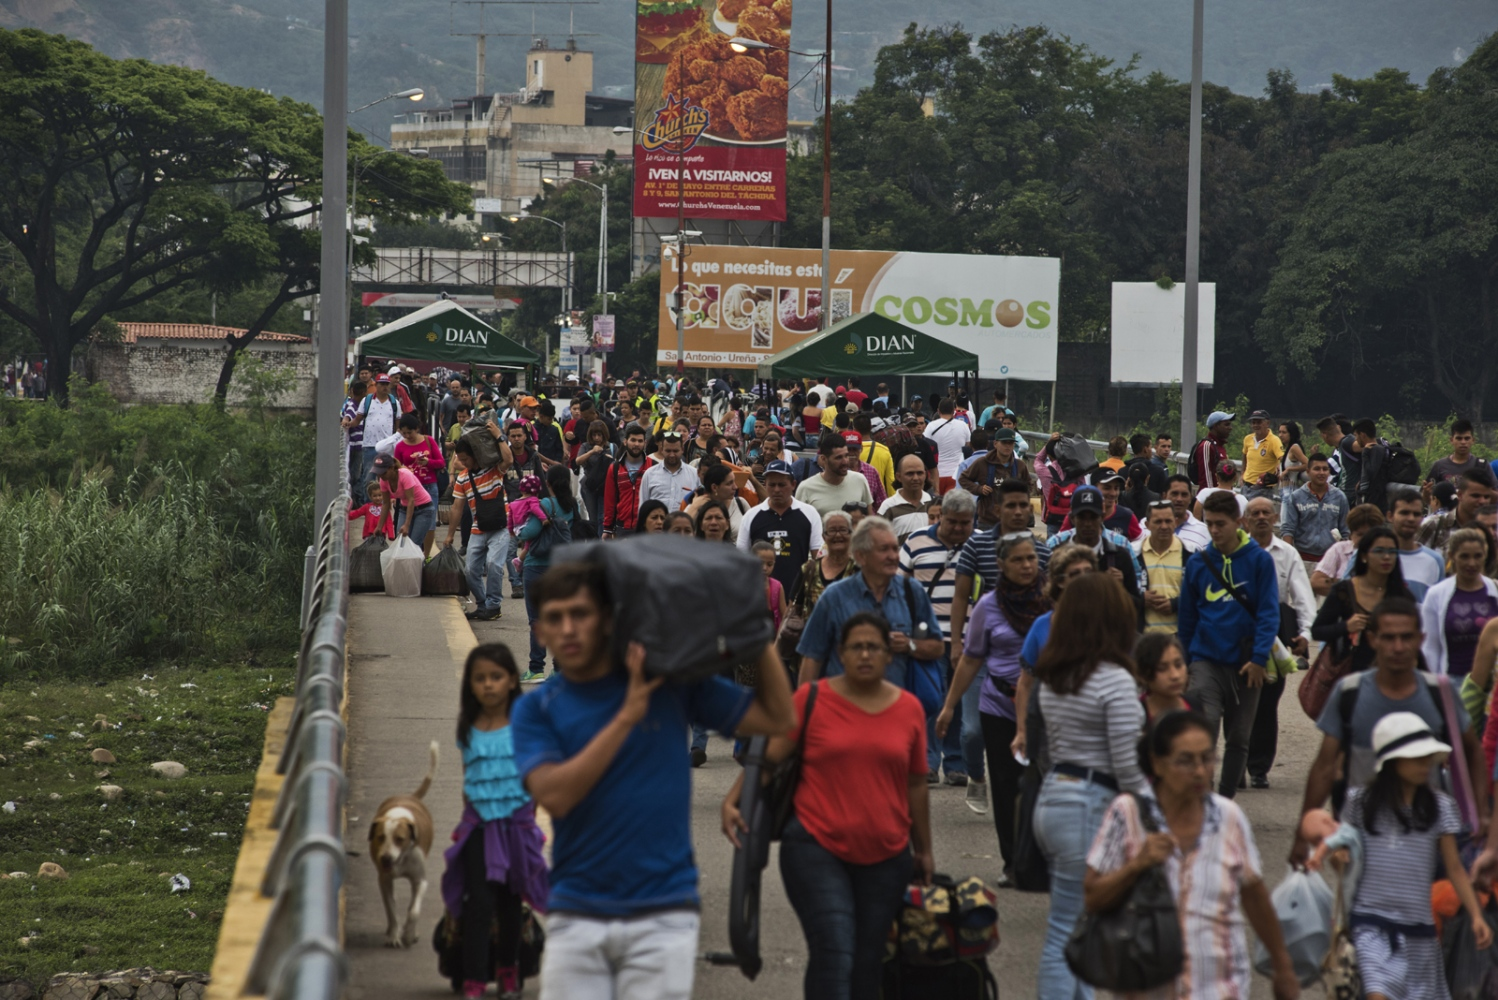 Hundreds of people cross from Venezuela to Colombia through the Simon Bolivar border point to find medicines, food, supplies, or informal jobs on March, 2017 in Cucuta, Colombia.